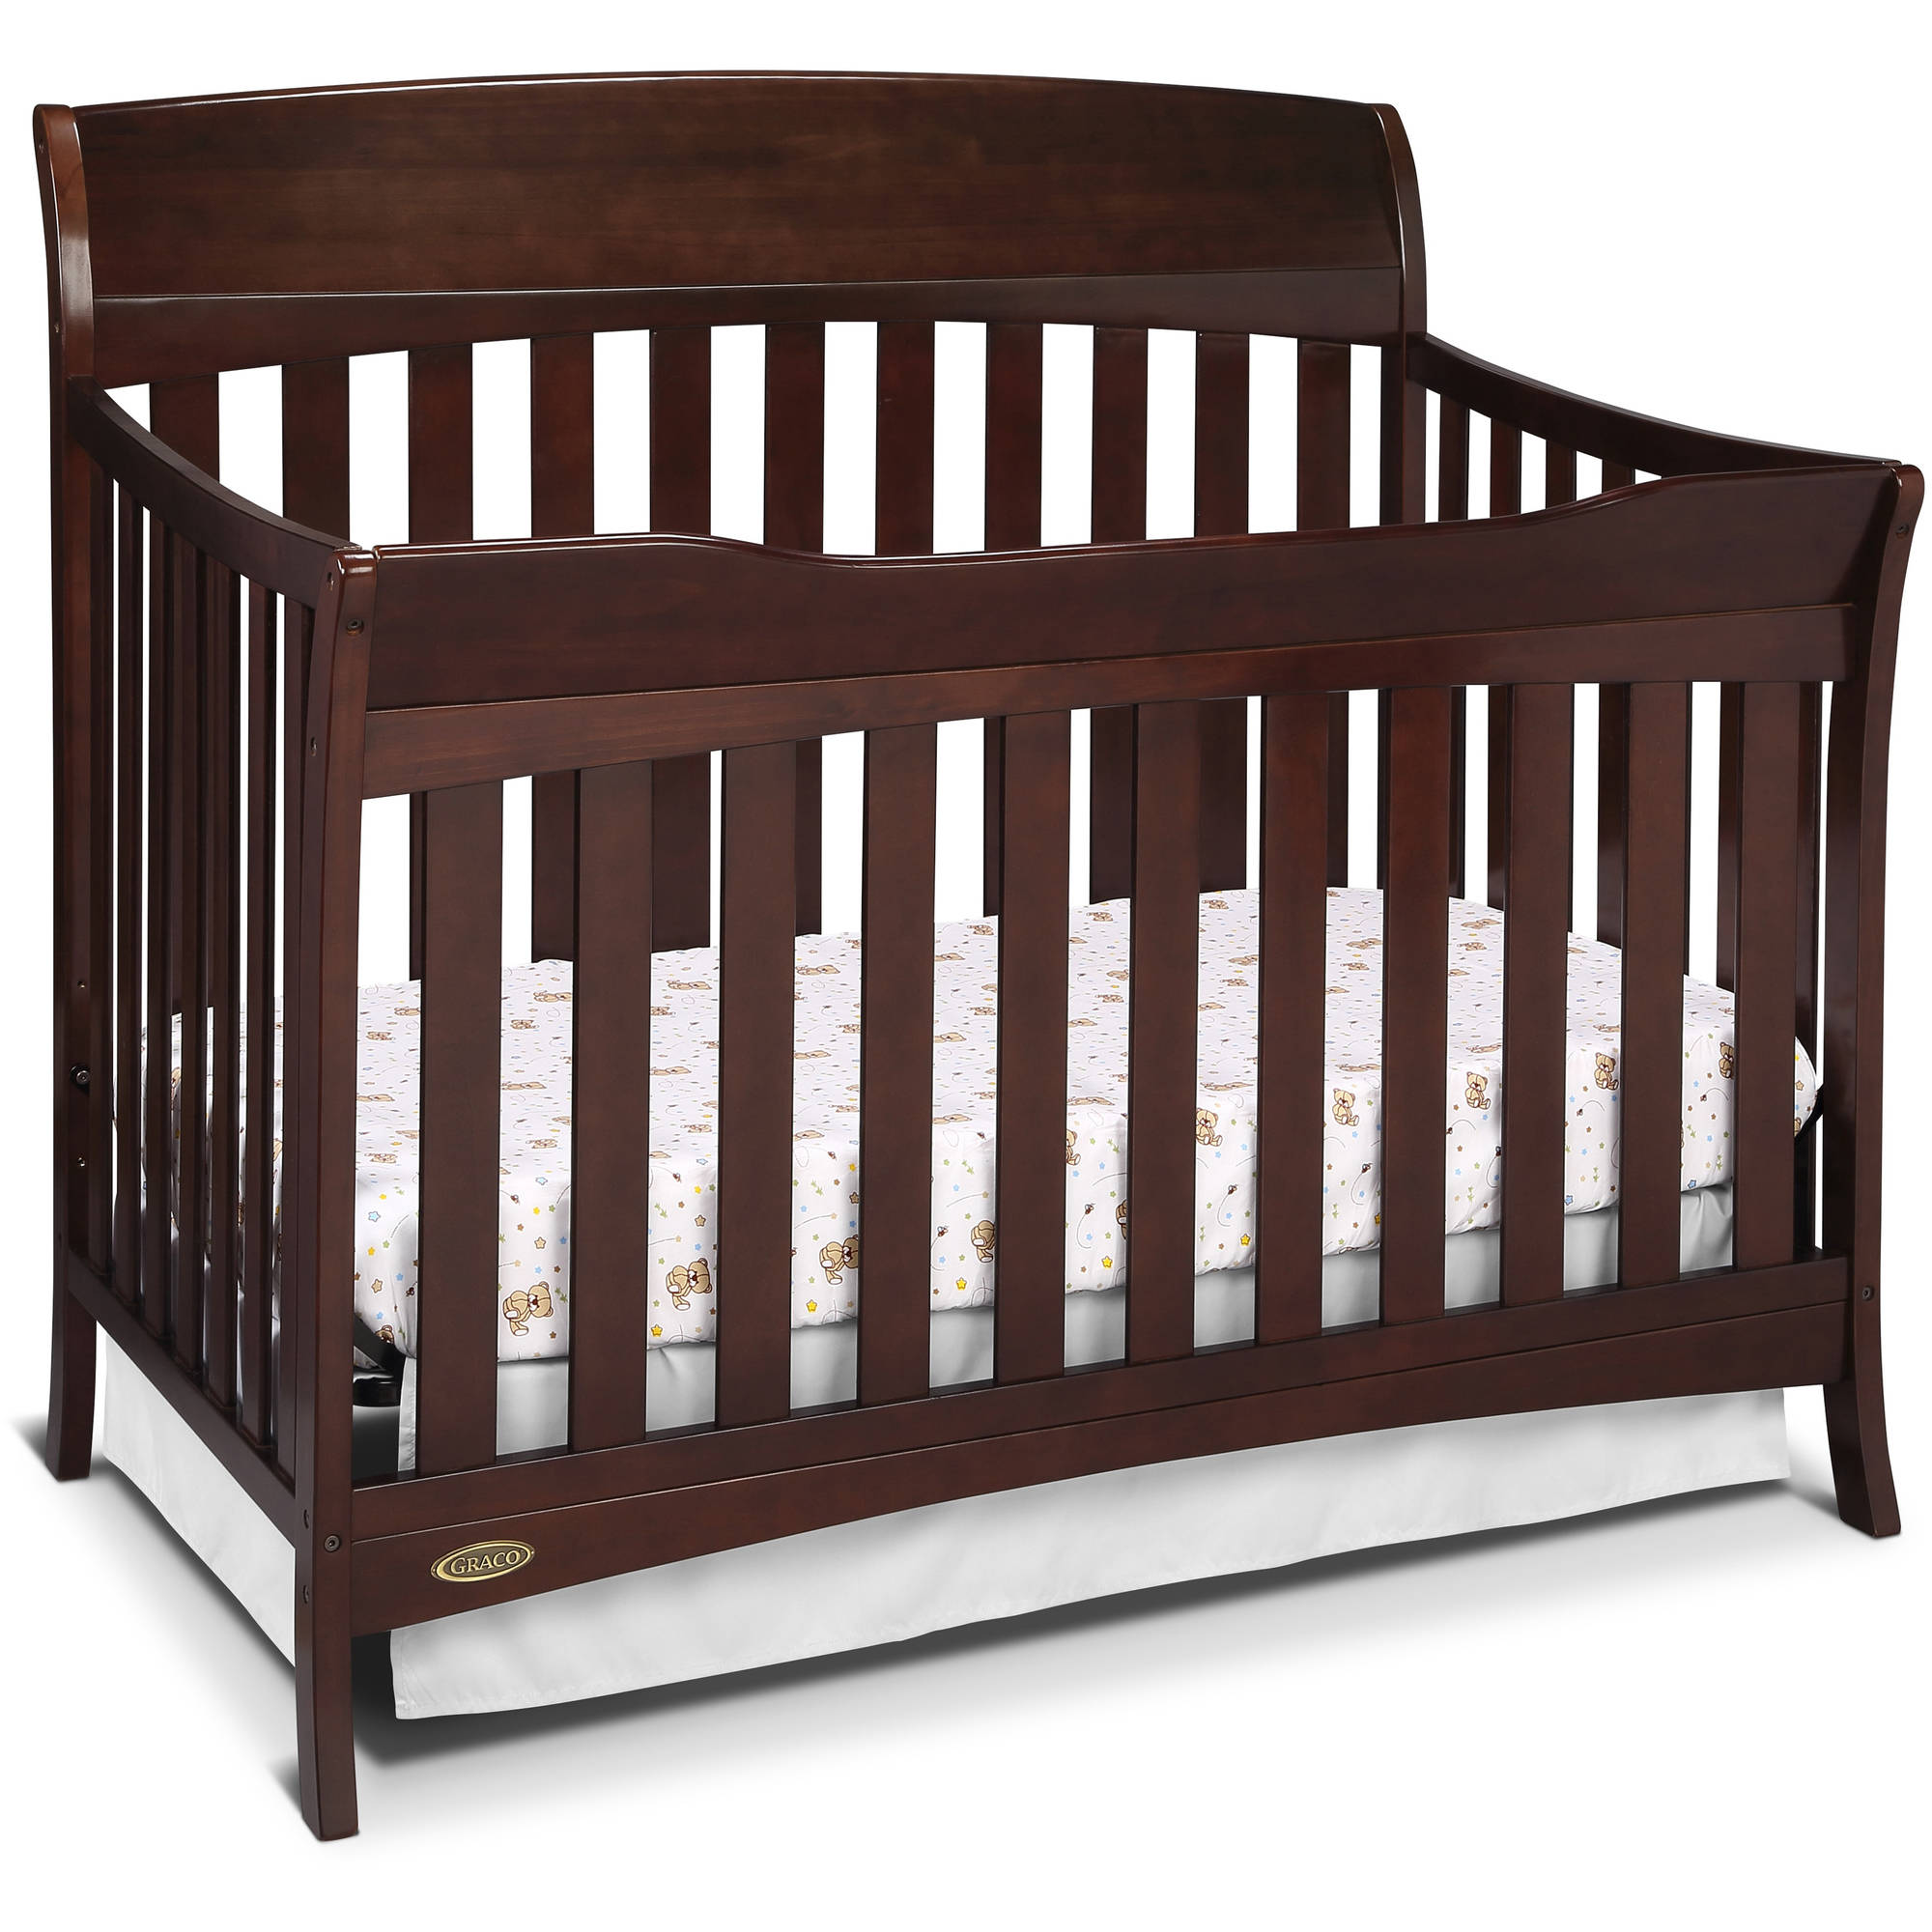 Graco Lennon 4-in-1 Convertible Crib Espresso